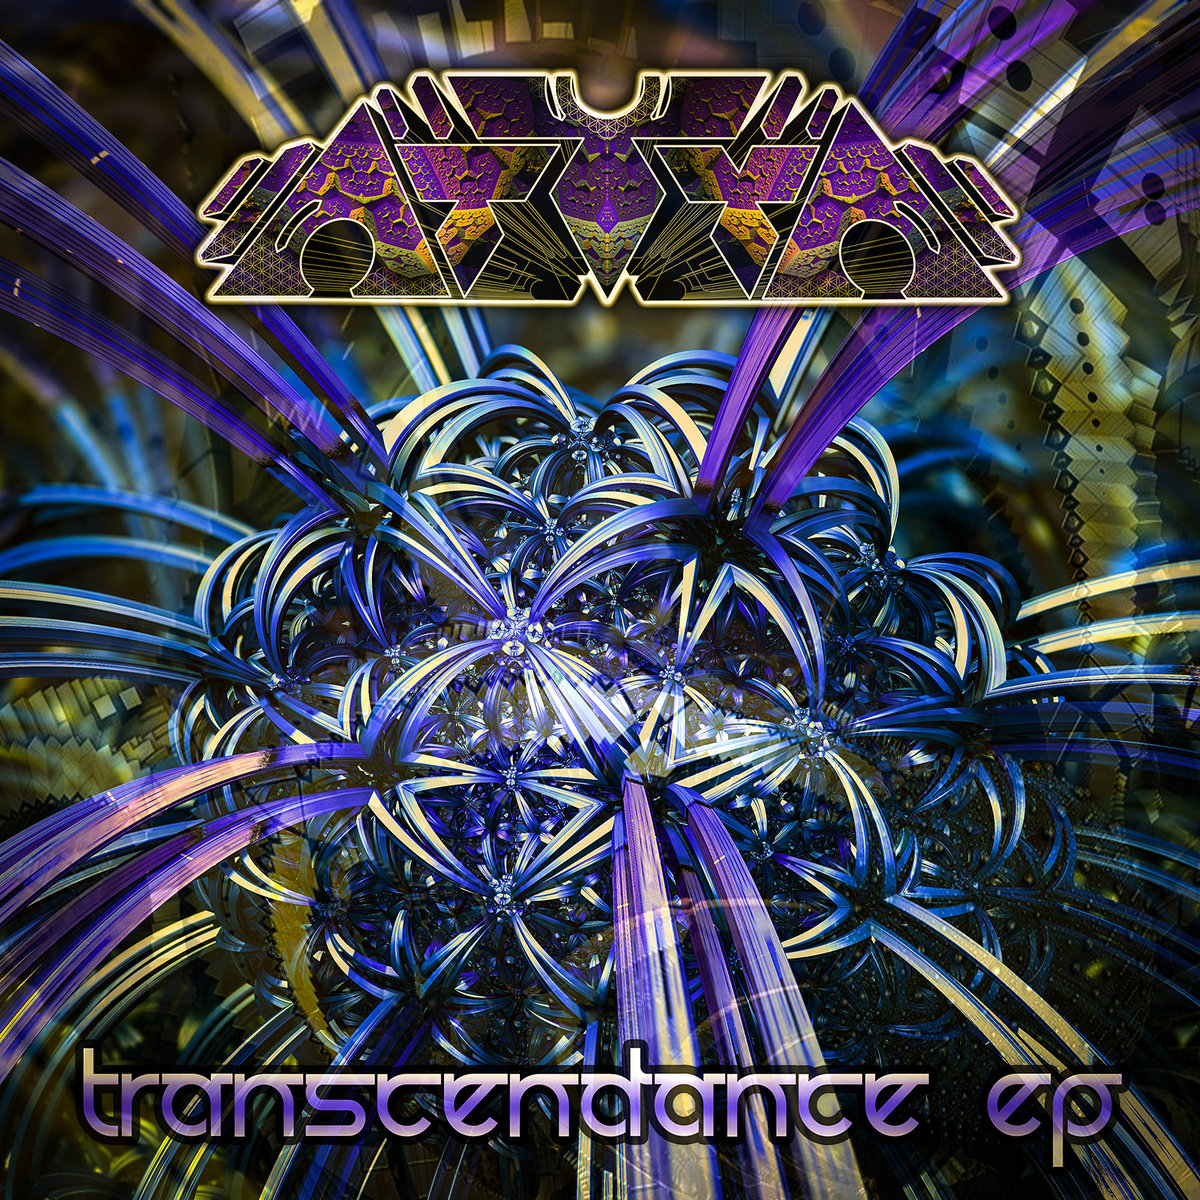 AtYyA - Listen To Your Heart @ 'Transcendance' album (432hz, atyya)